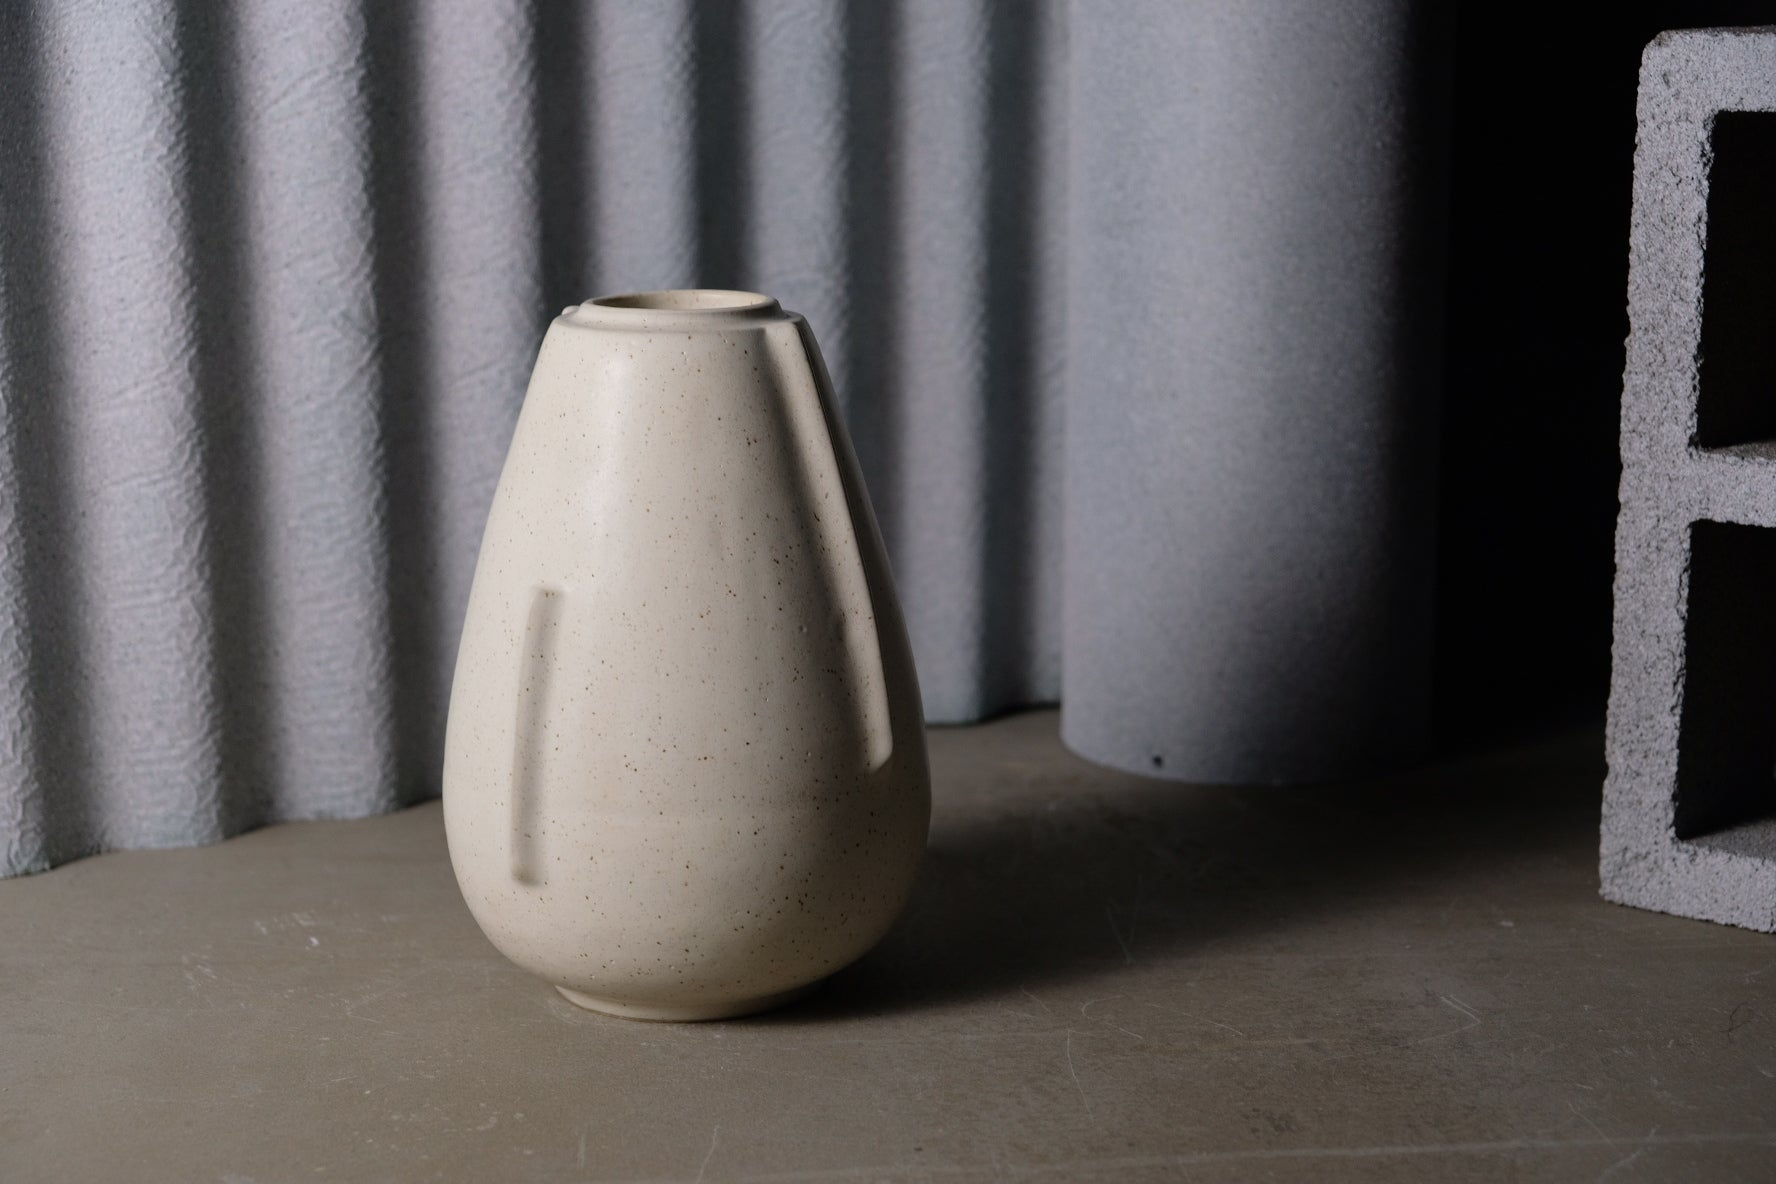 Teardrop Vase | LGS Studio | Little Garage Shop